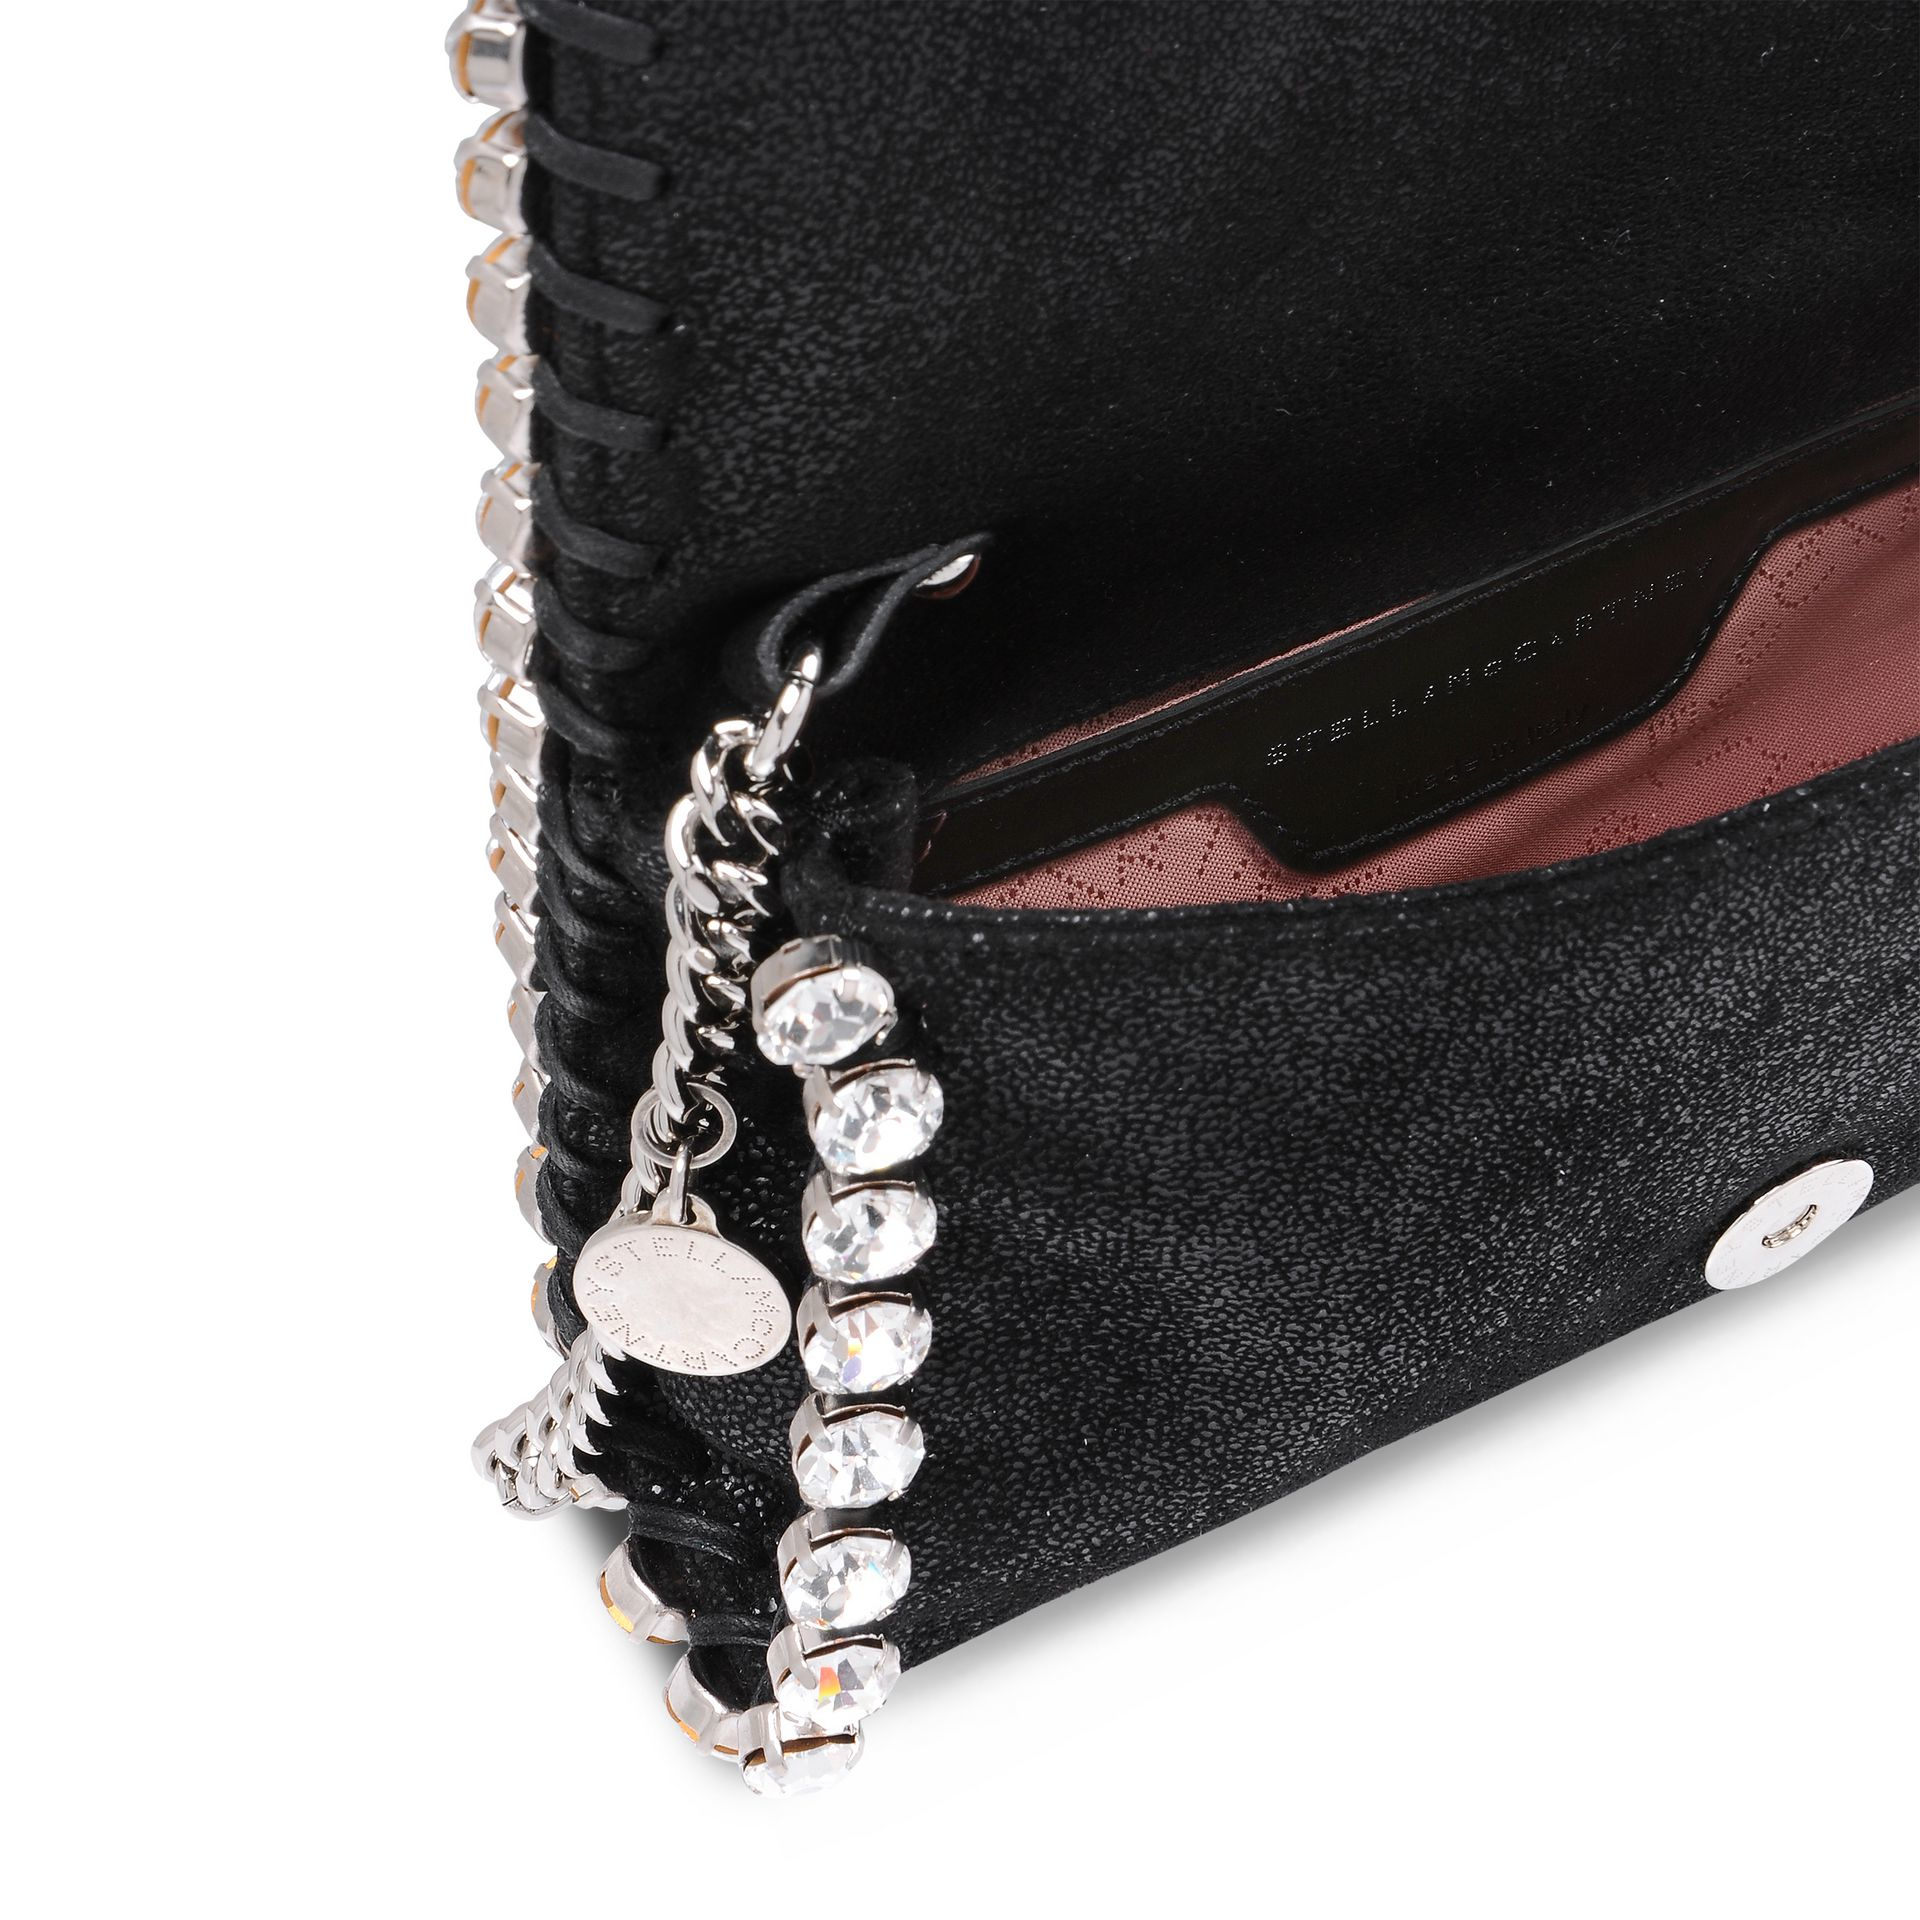 Stella McCartney Synthetic Falabella Stone Chain Cross Body Bag in Black